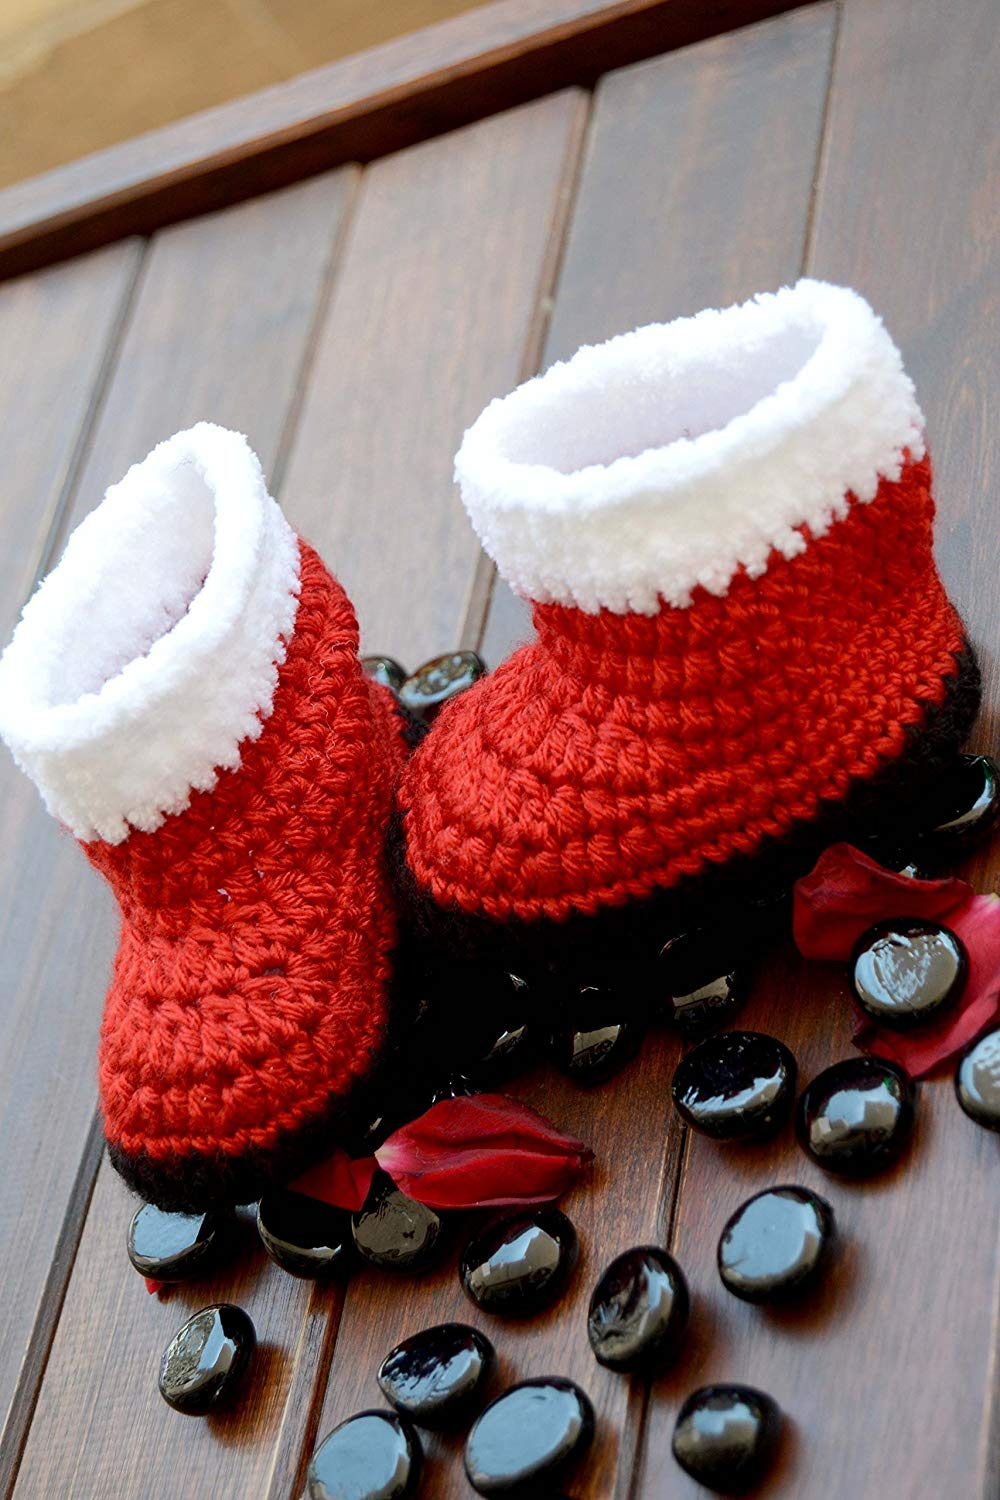 61bcc27273d1f Cheap Booties Red, find Booties Red deals on line at Alibaba.com